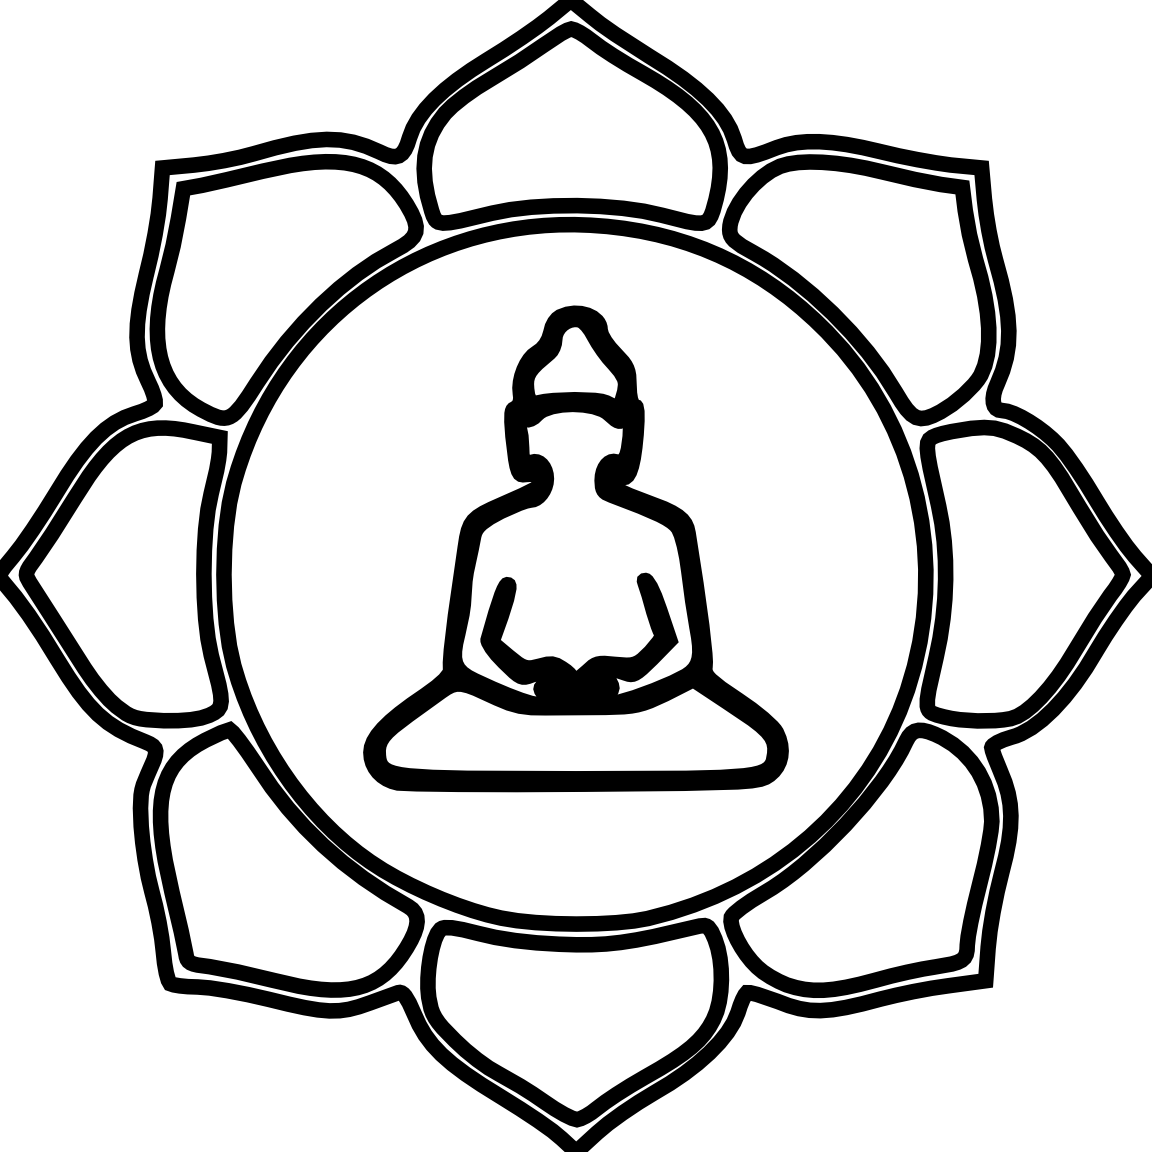 Buddha Flower Color Black White Line Art Coloring Book.